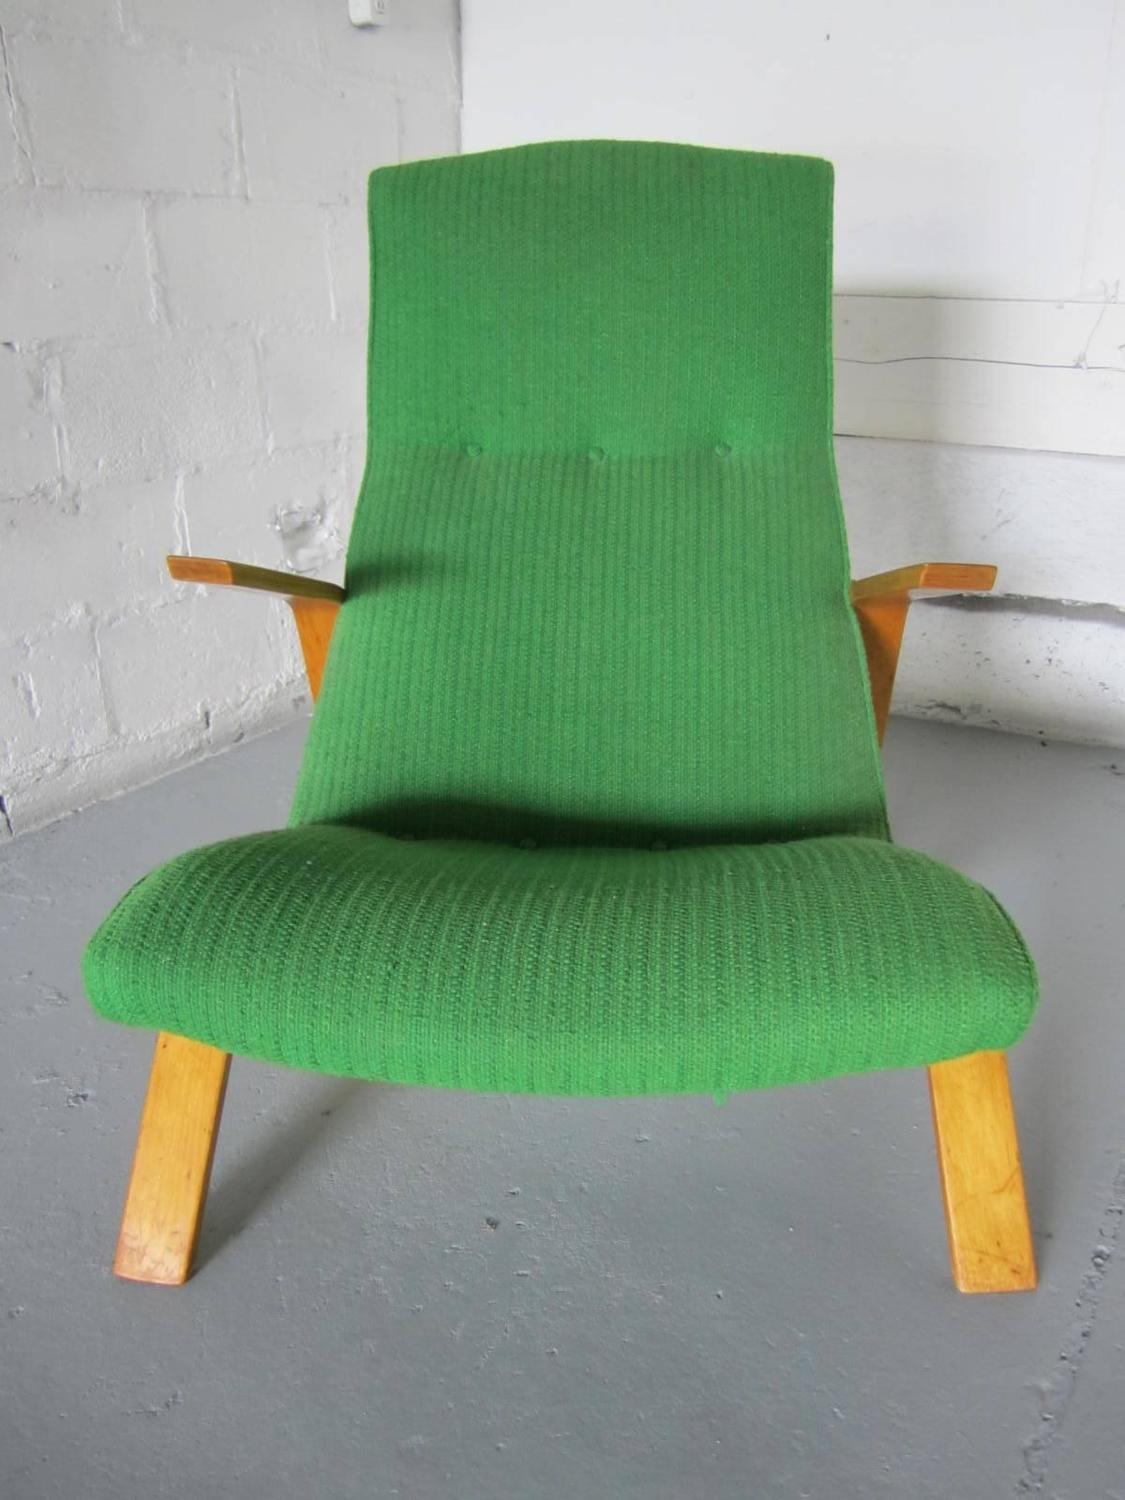 1960s Grasshopper Chair By Eero Saarinen For Knoll Mid